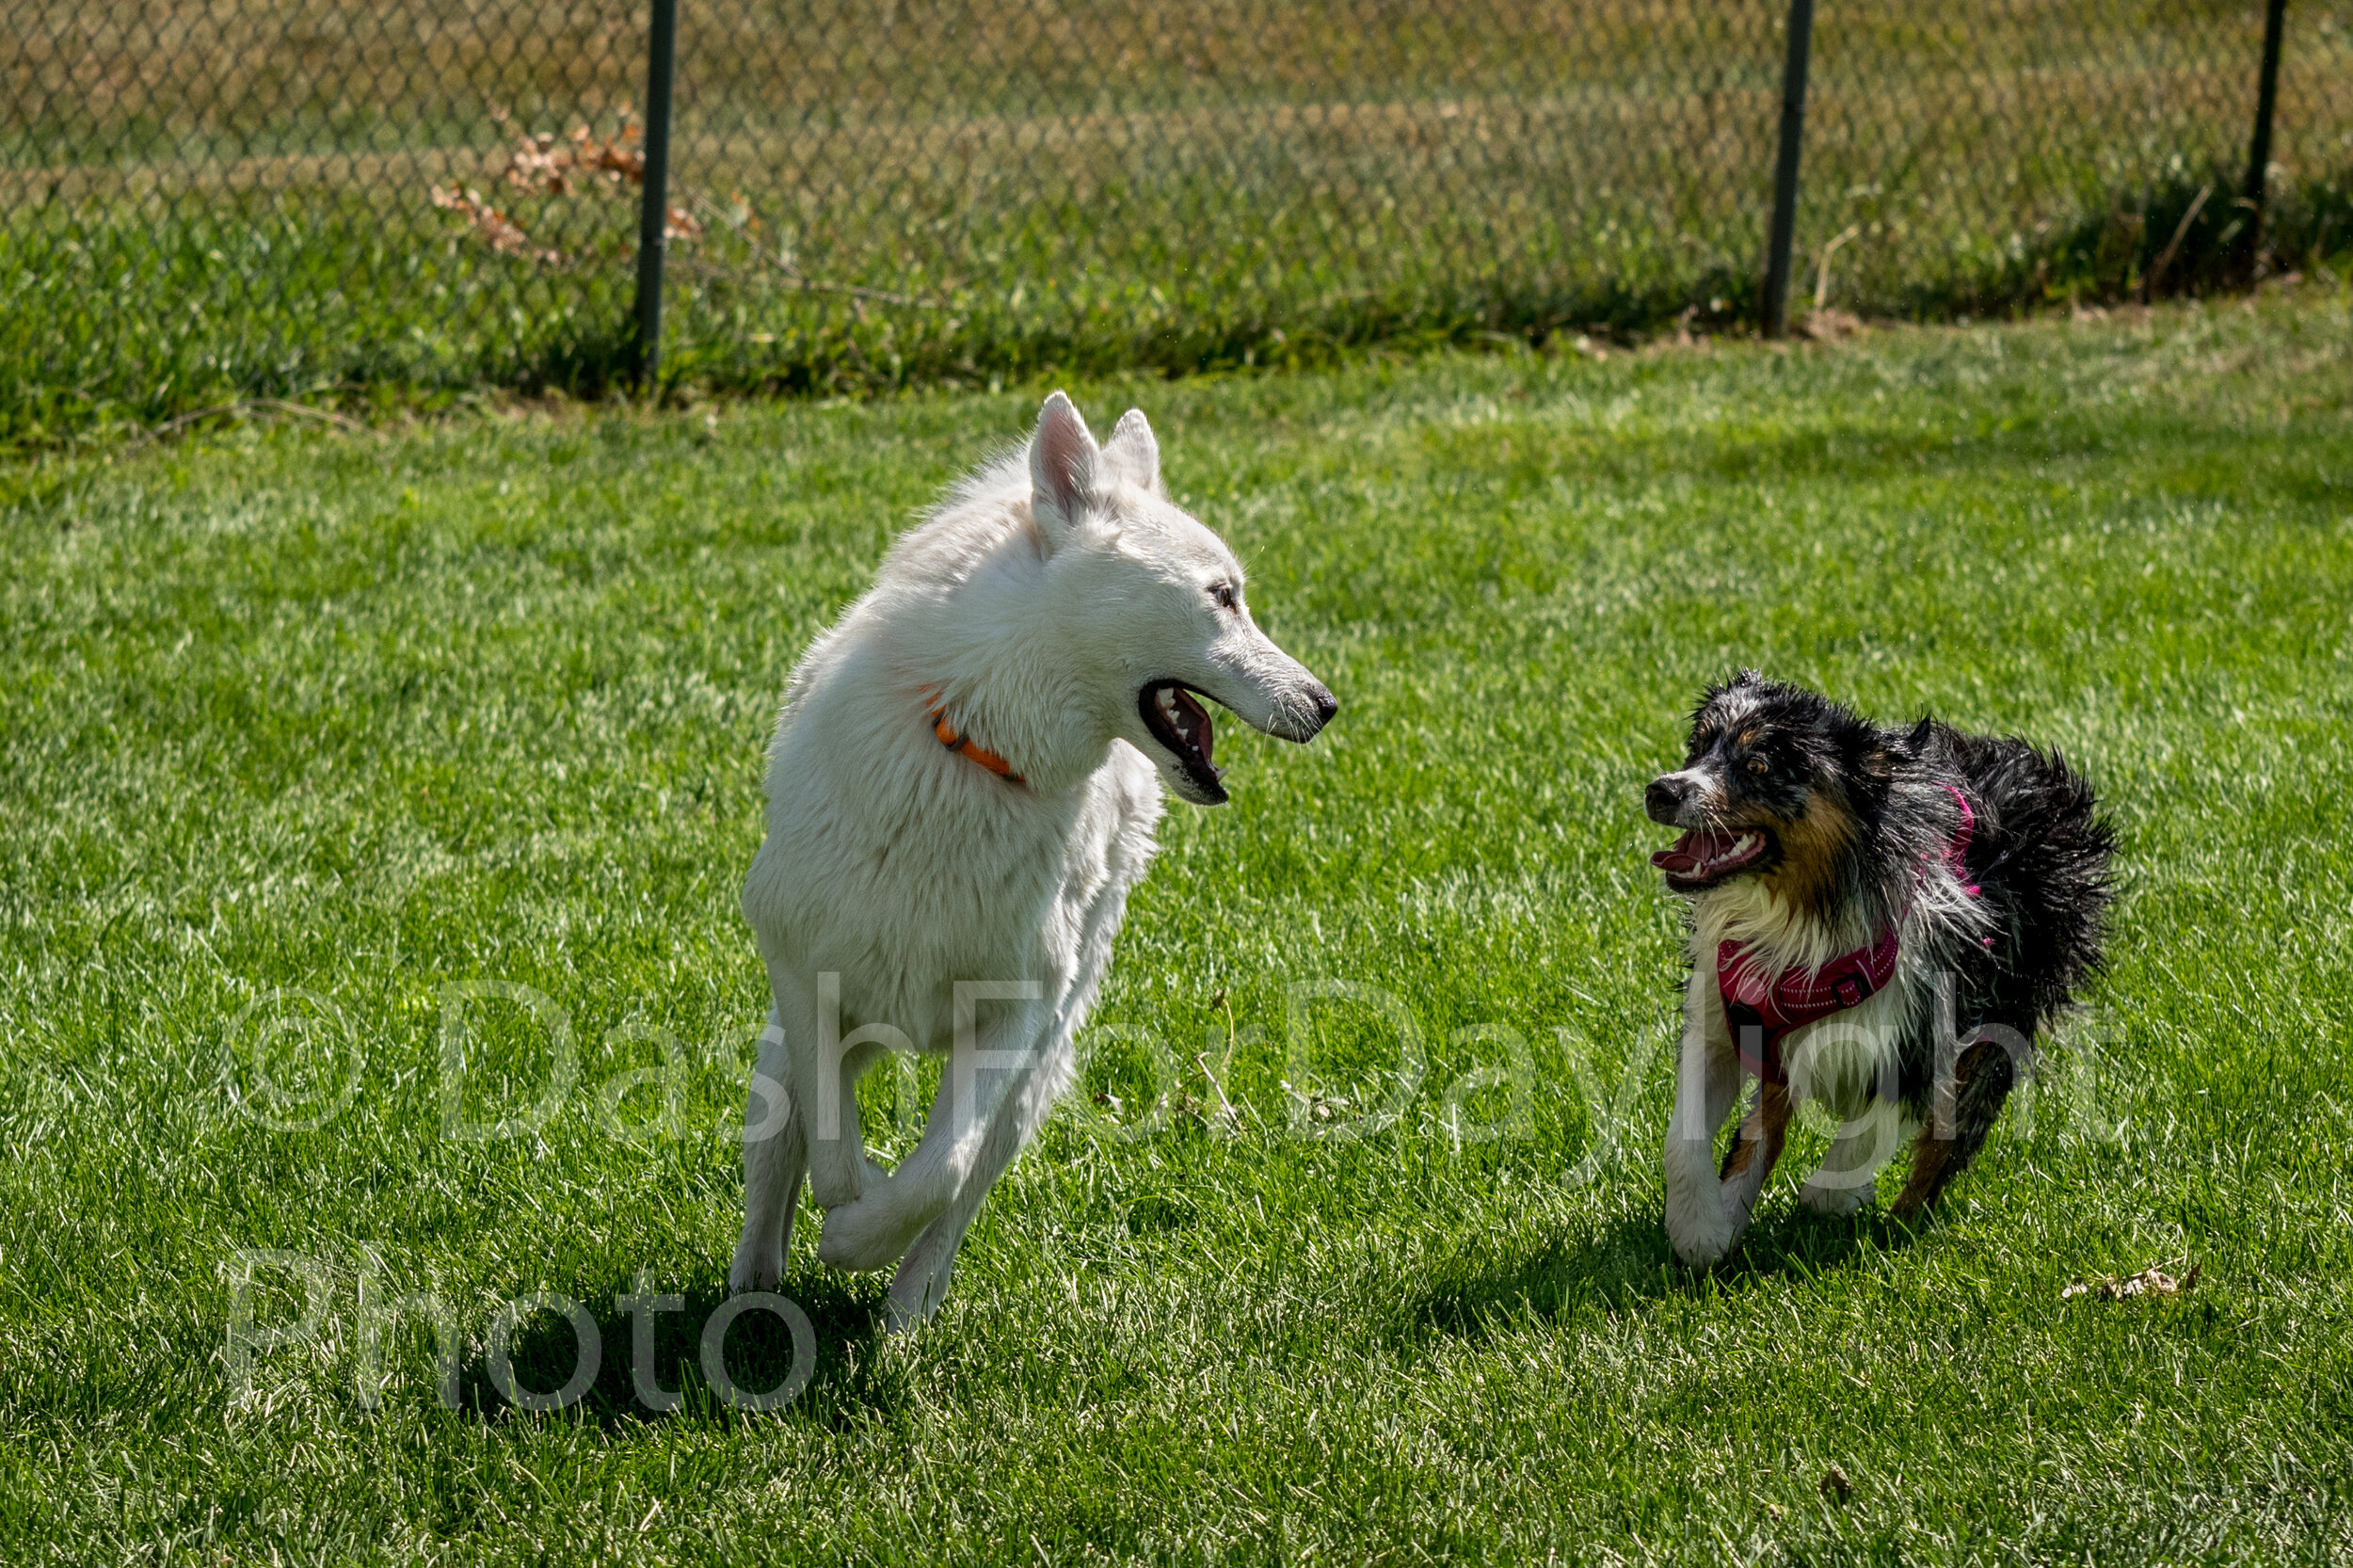 #1314 Aussie and Shepard Play in the Grass